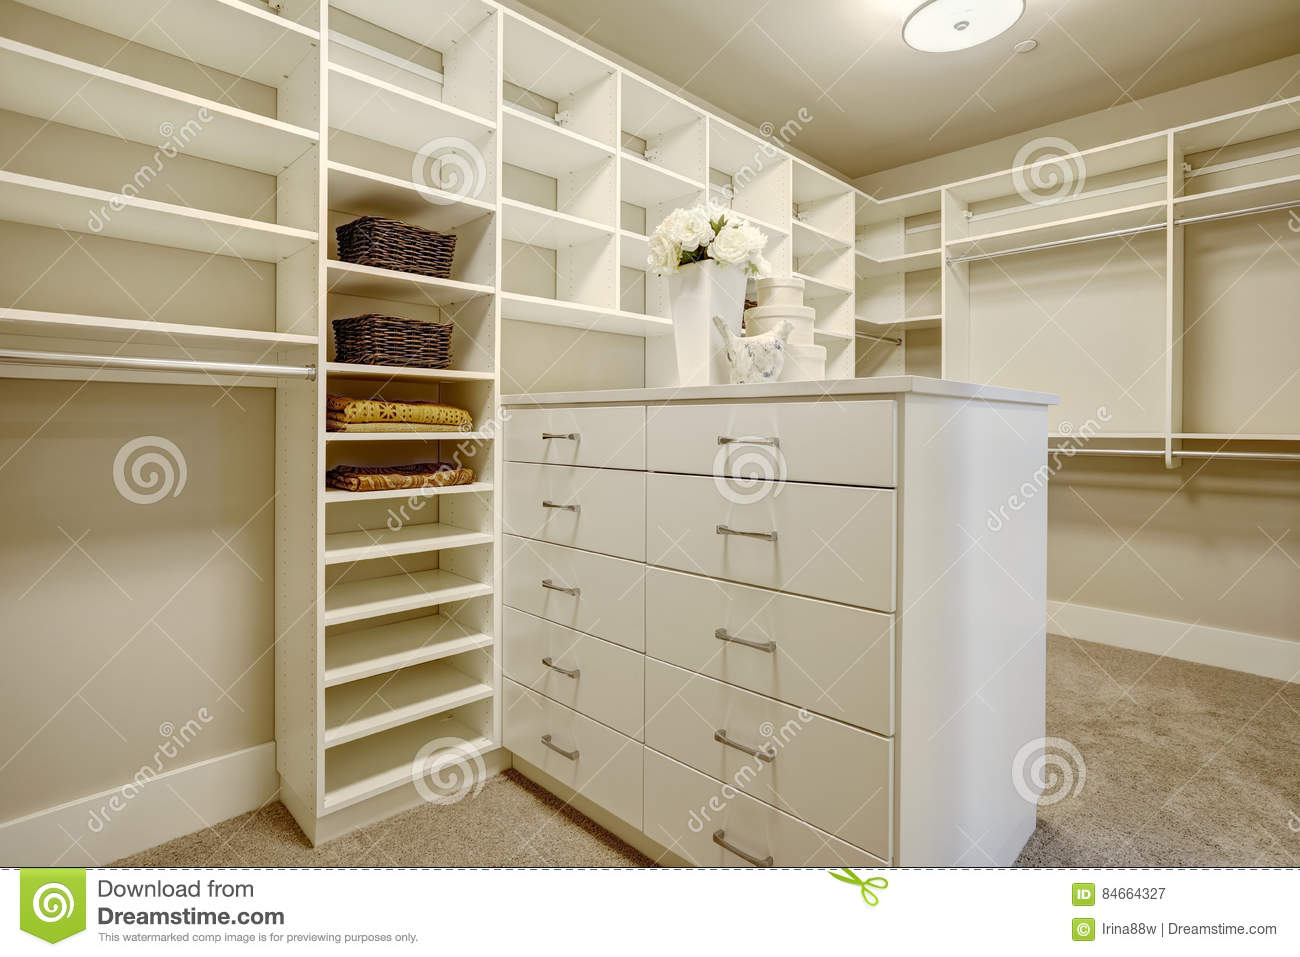 Download Huge Walk In Closet With Shelves, Drawers And Shoe Racks. Stock  Image